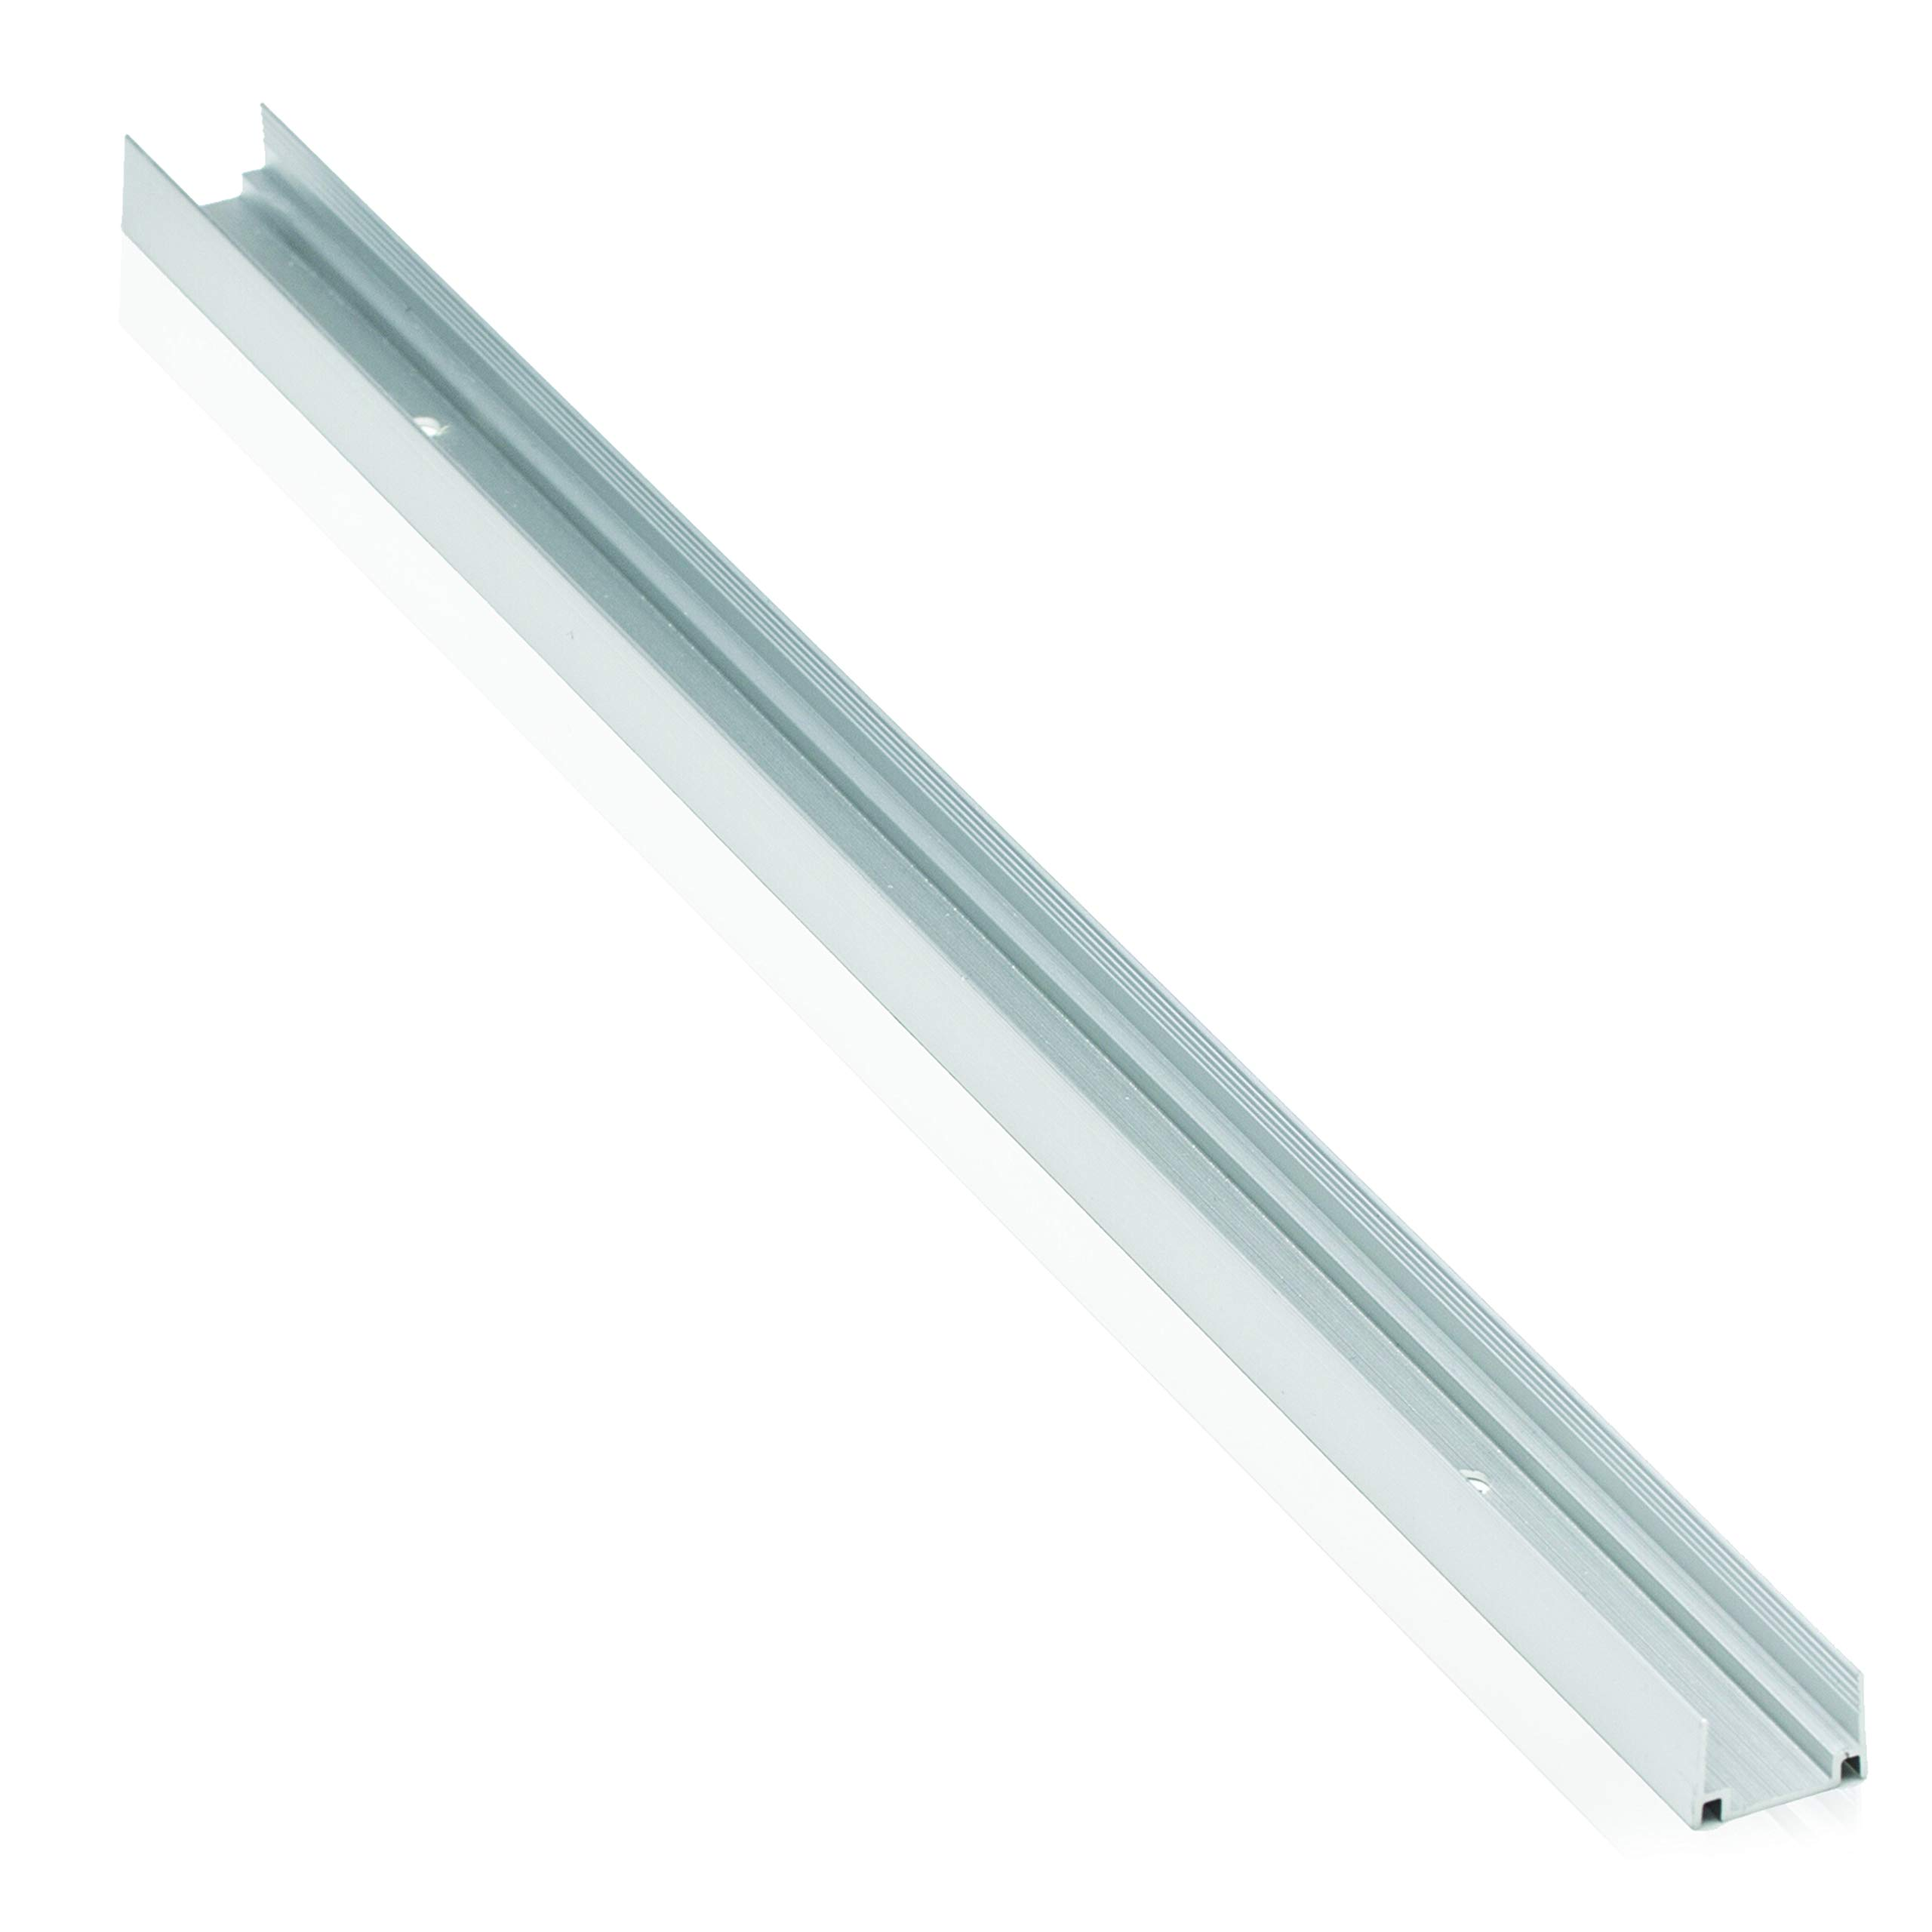 4ft. Aluminum Extrusion U-Channel for Use With Lumilum 120V LED Strip LUM-120505 Models